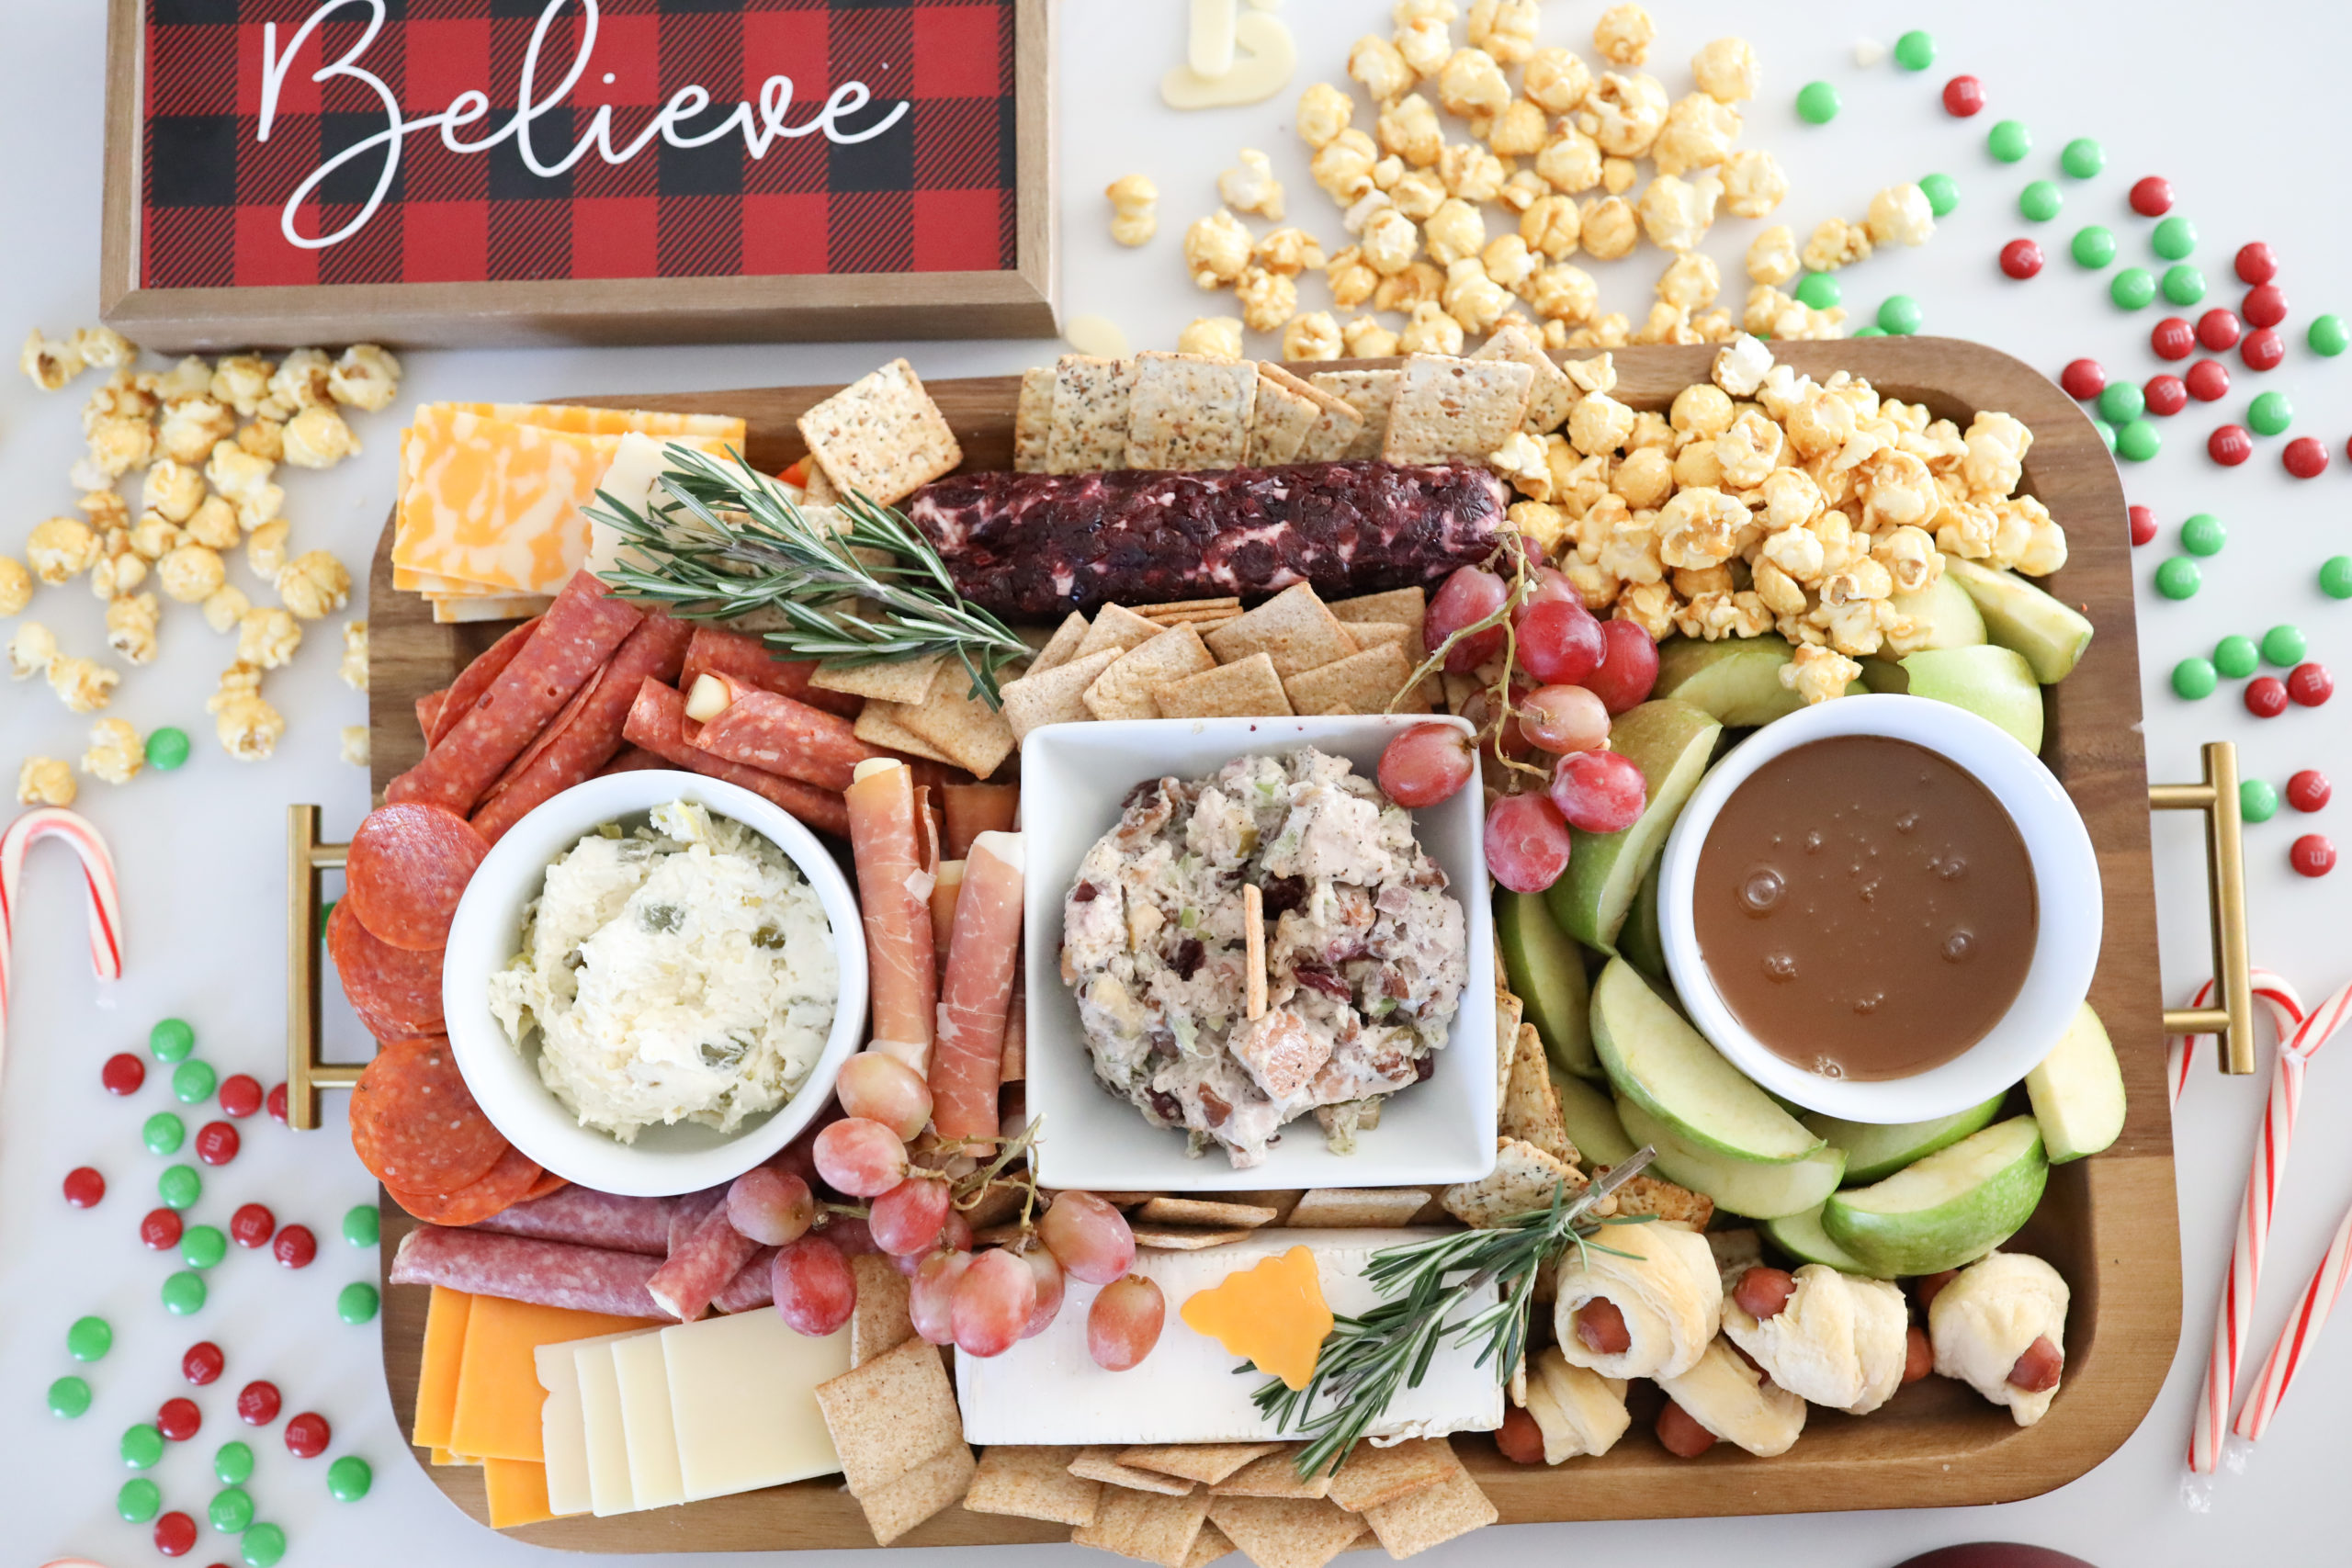 How to Make a Seasonal Charcuterie Board